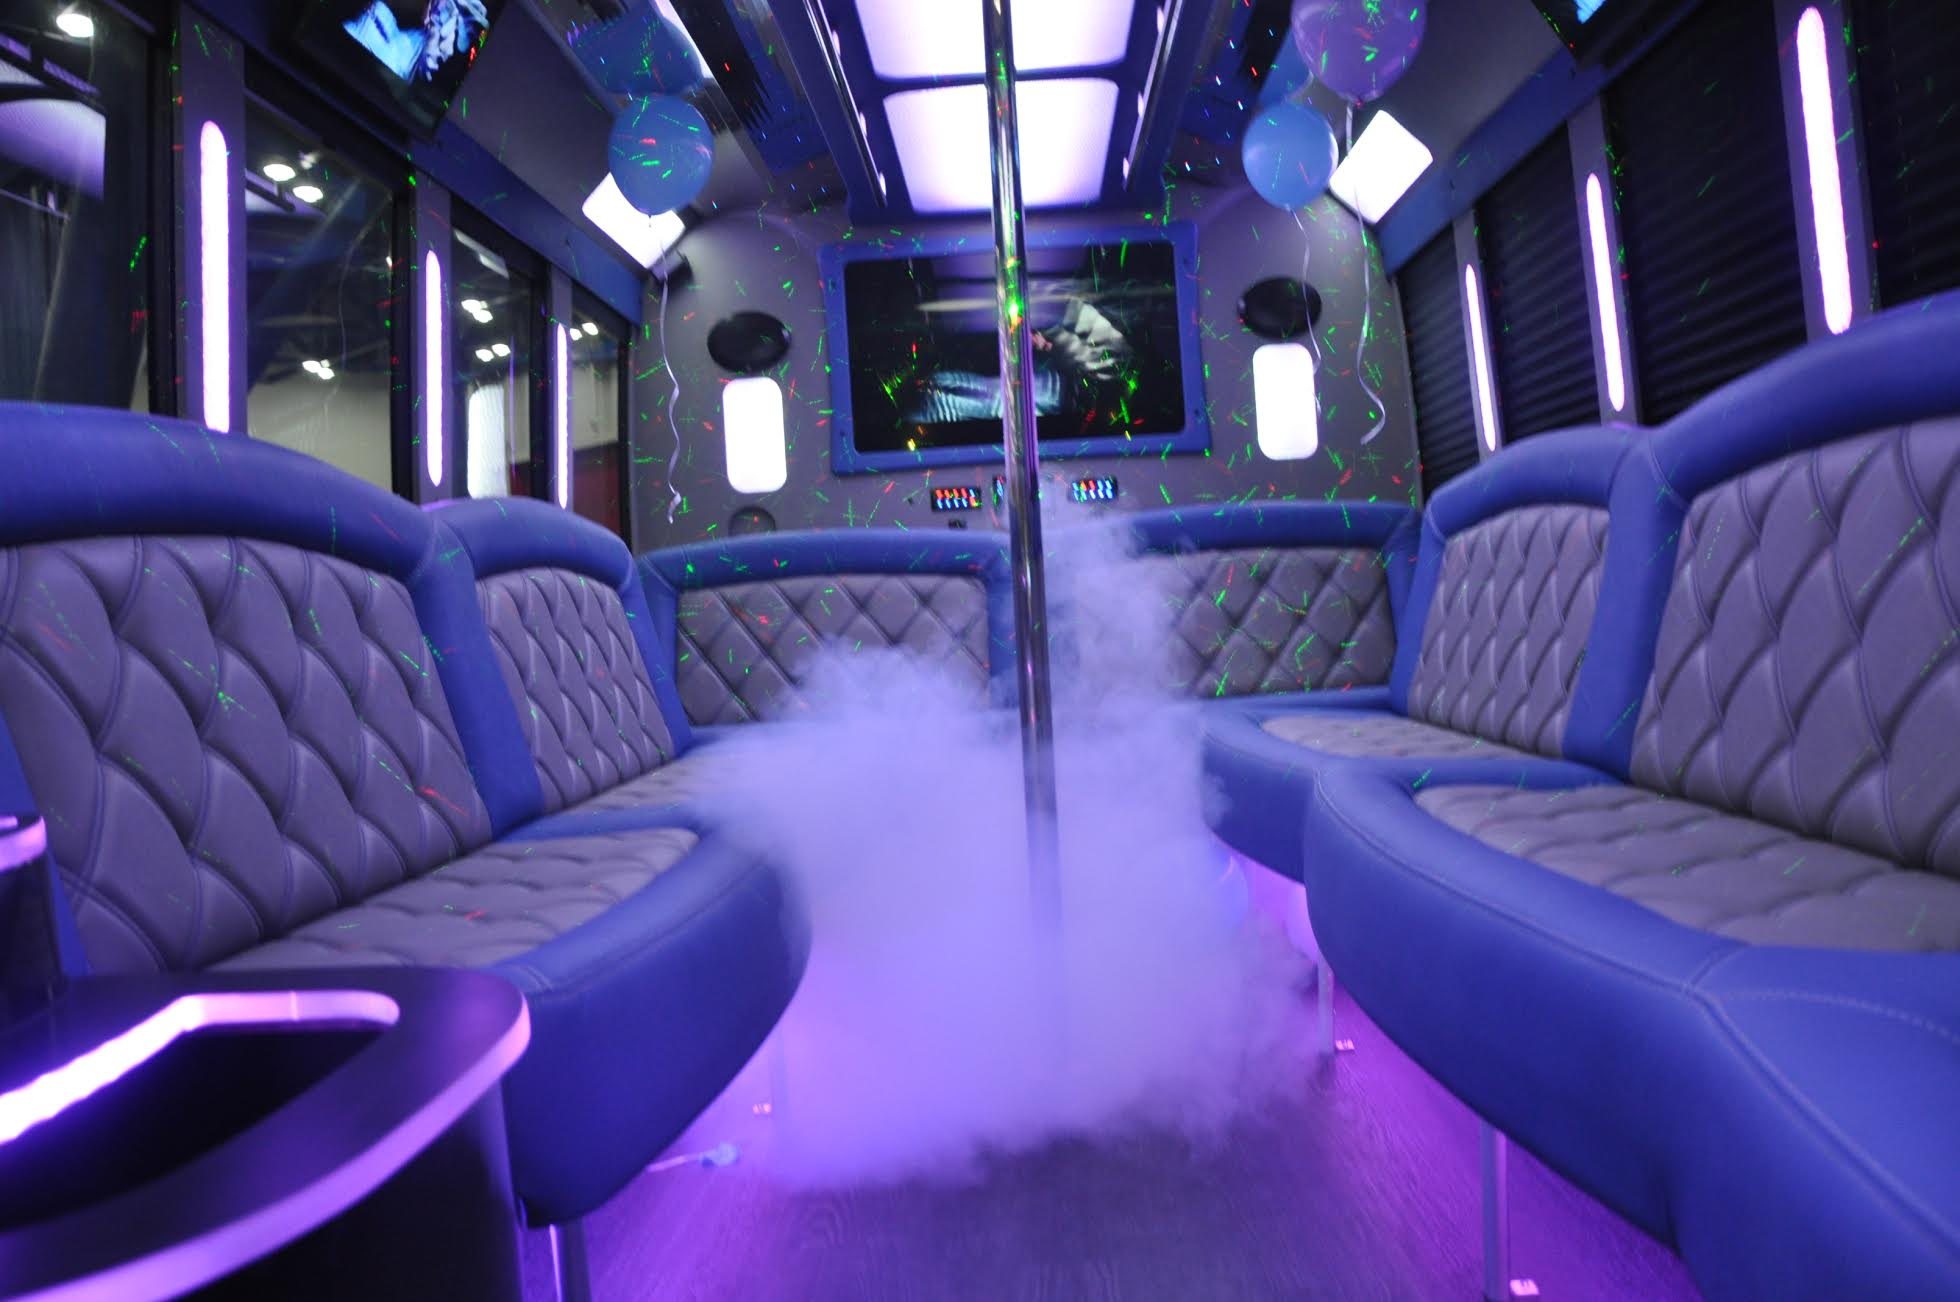 sams party bus